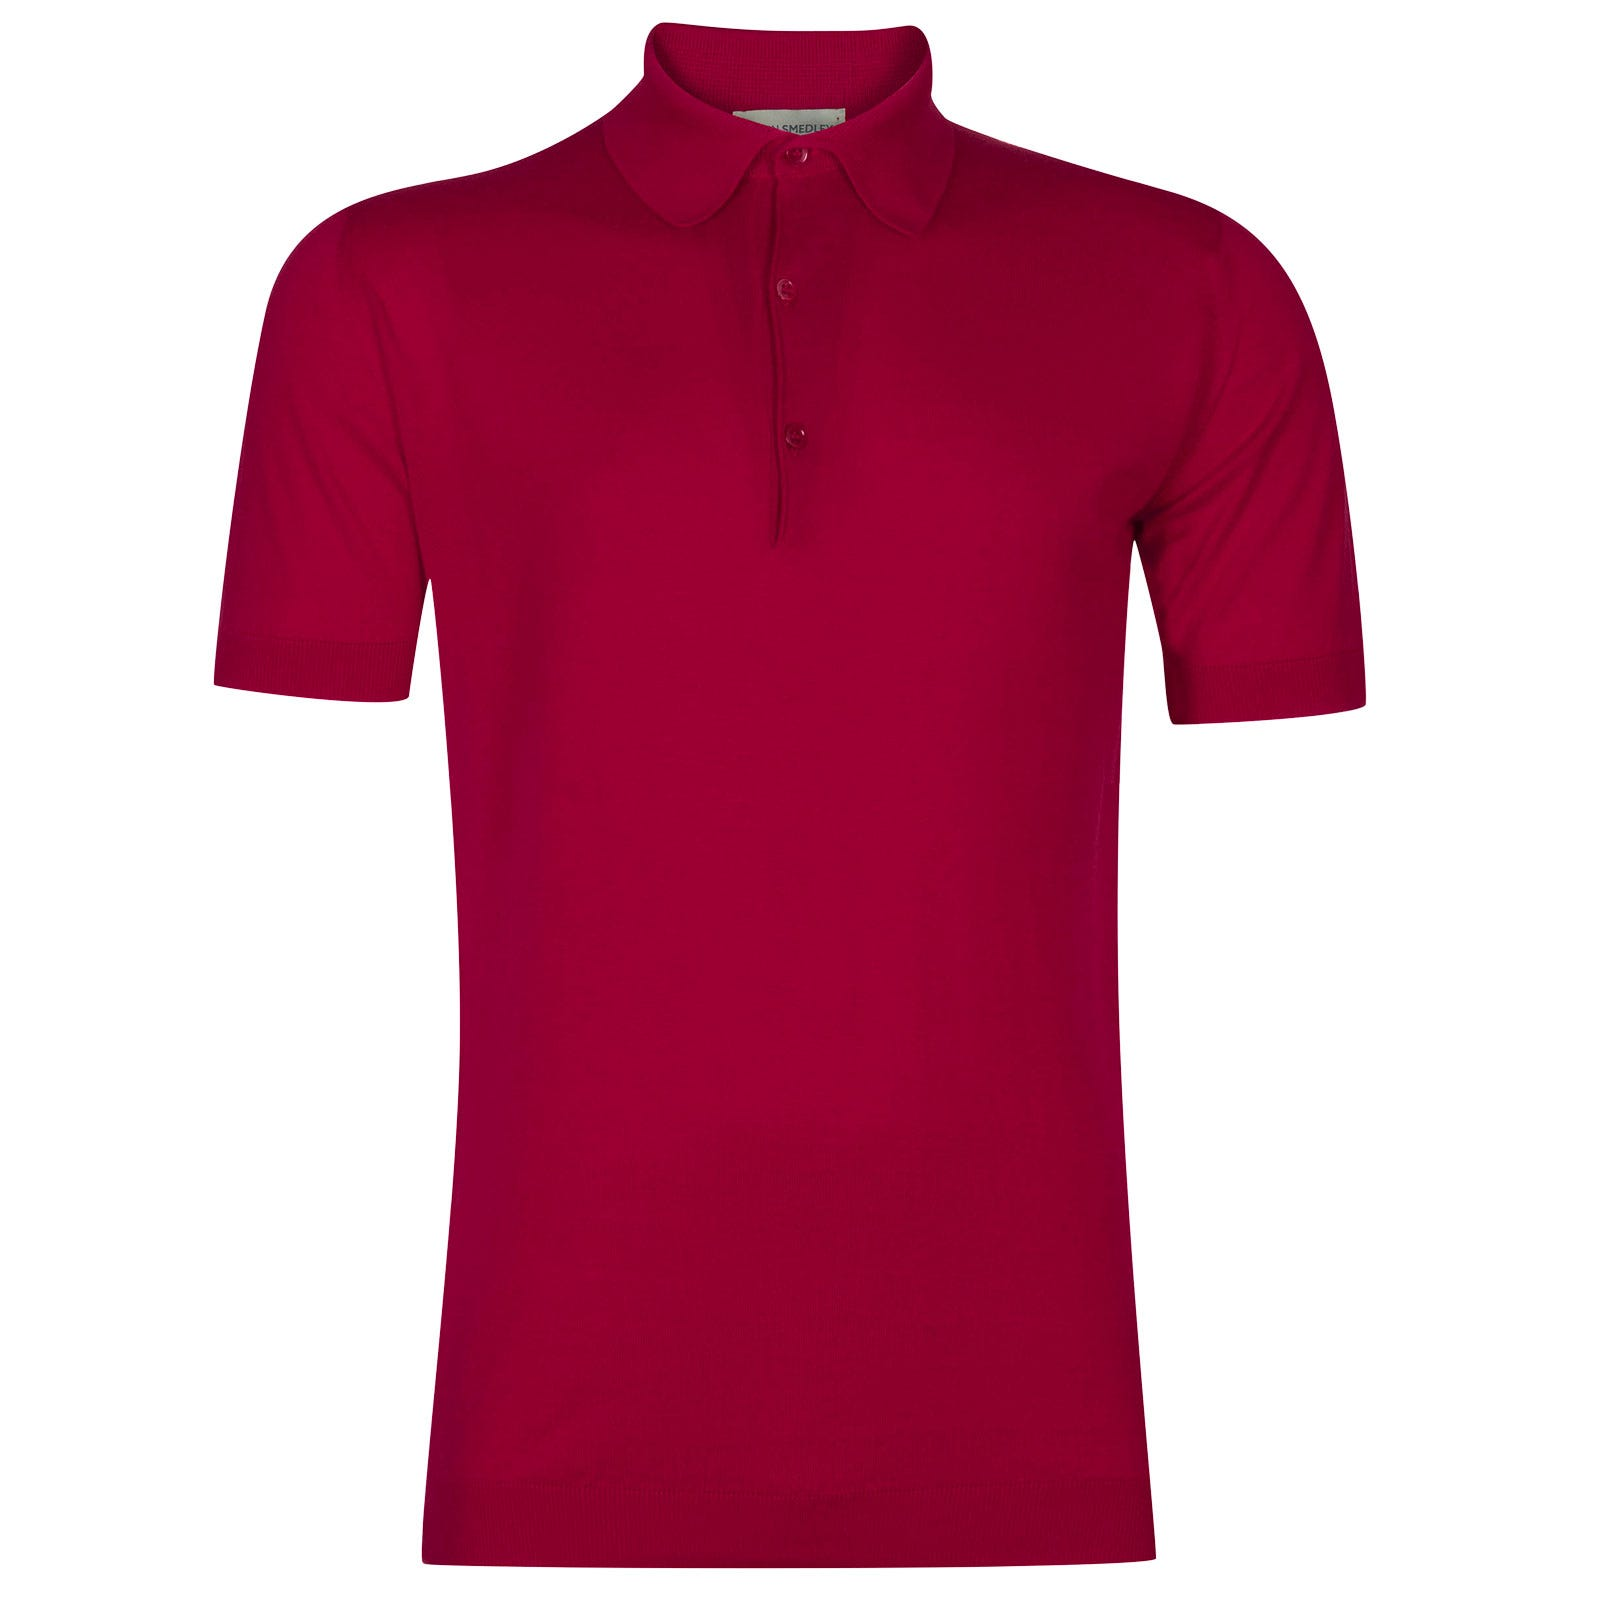 John Smedley adrian Sea Island Cotton Shirt in Scarlet Sky-XXL